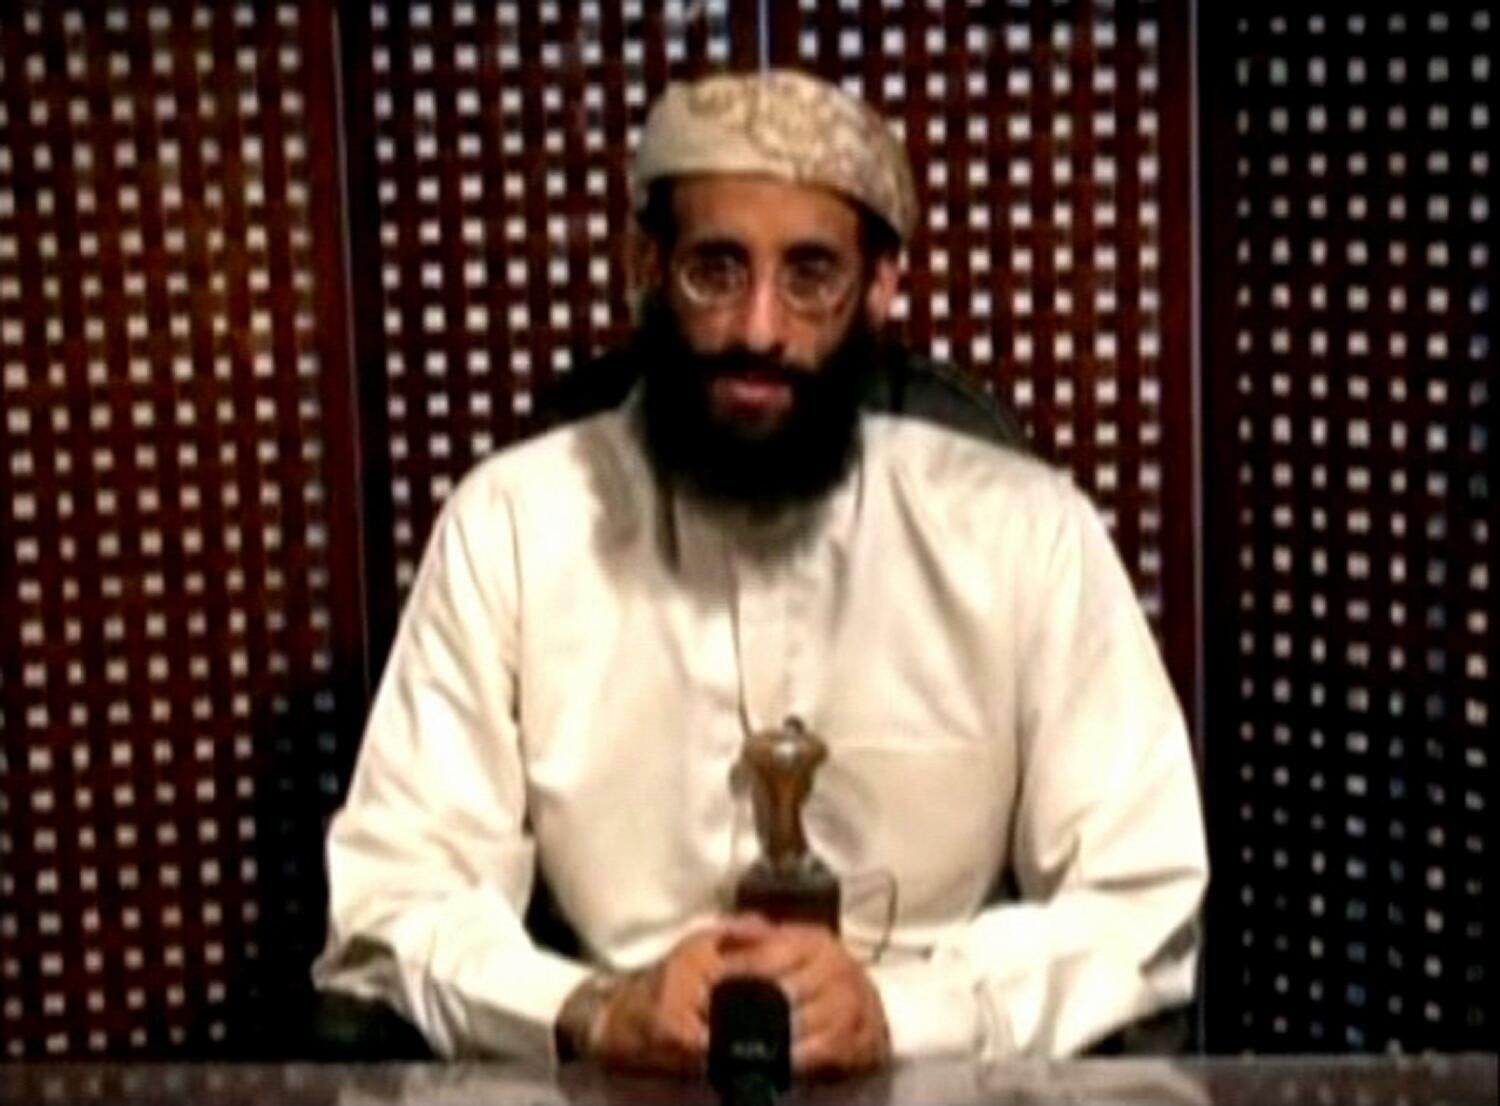 Second time Awlaqi's death has been reported